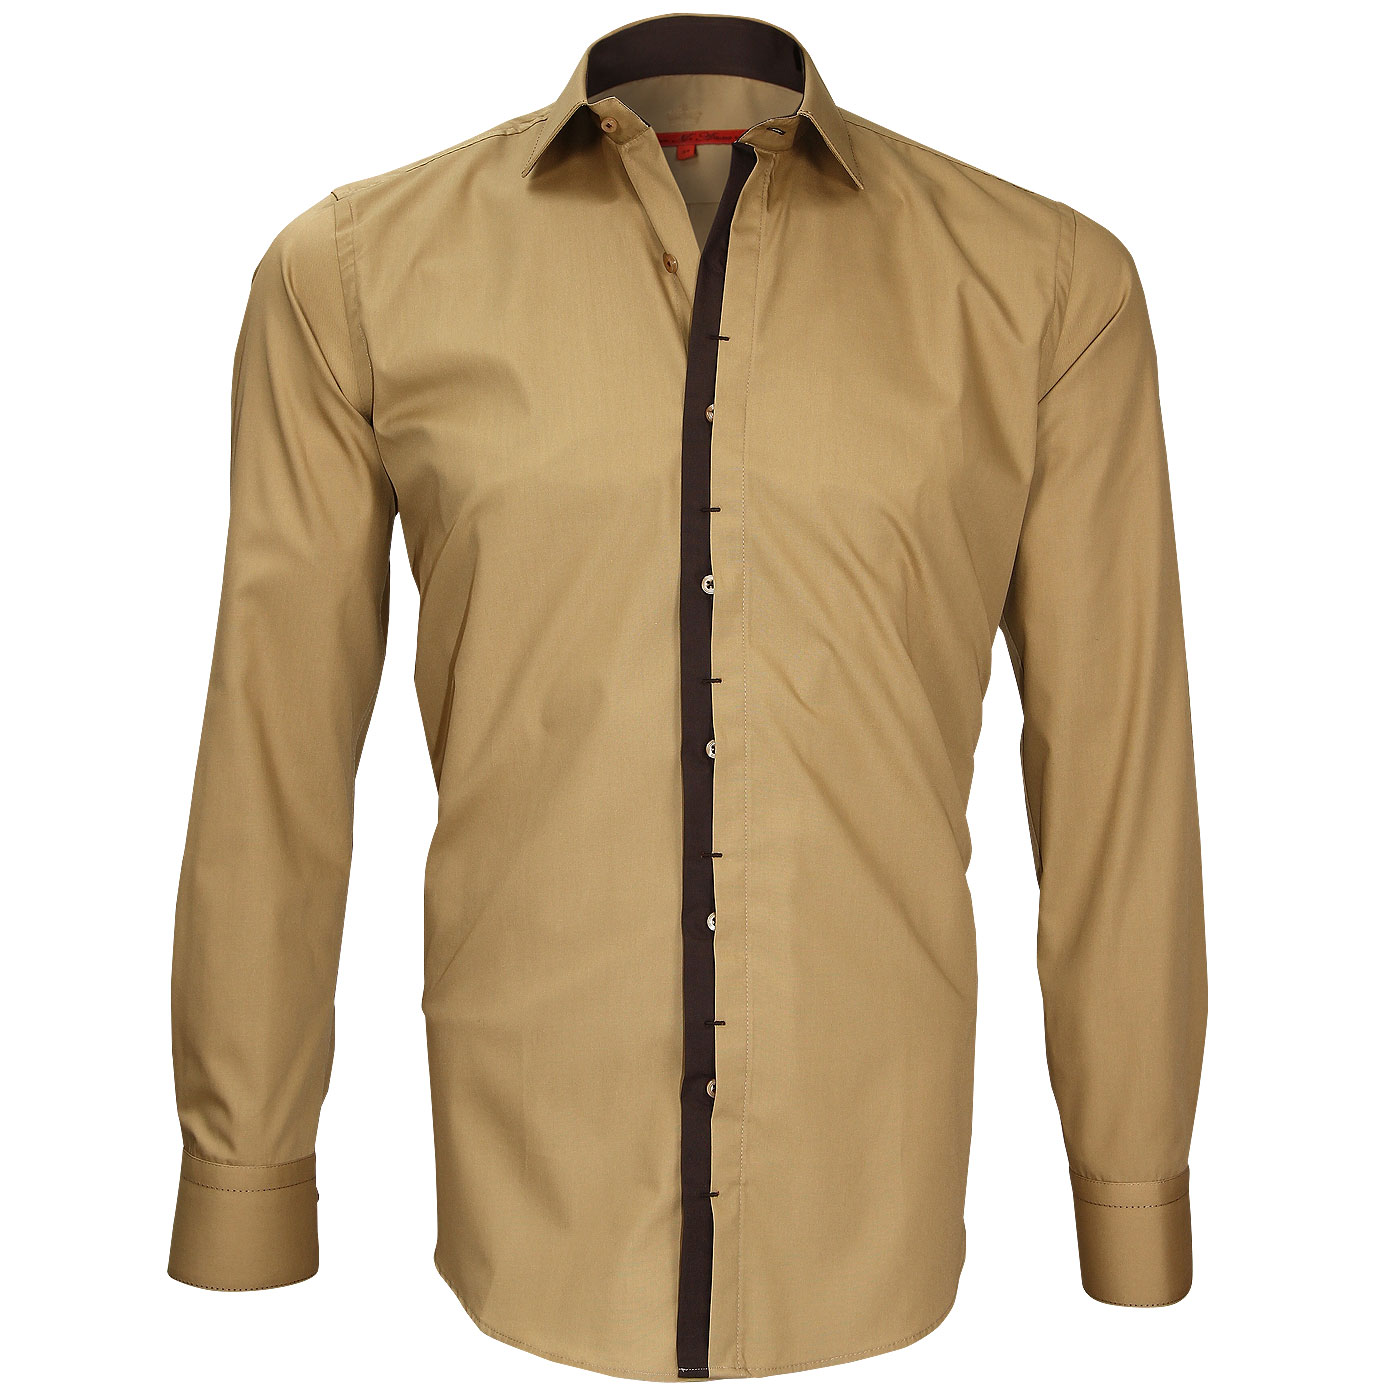 Dark beige shirt